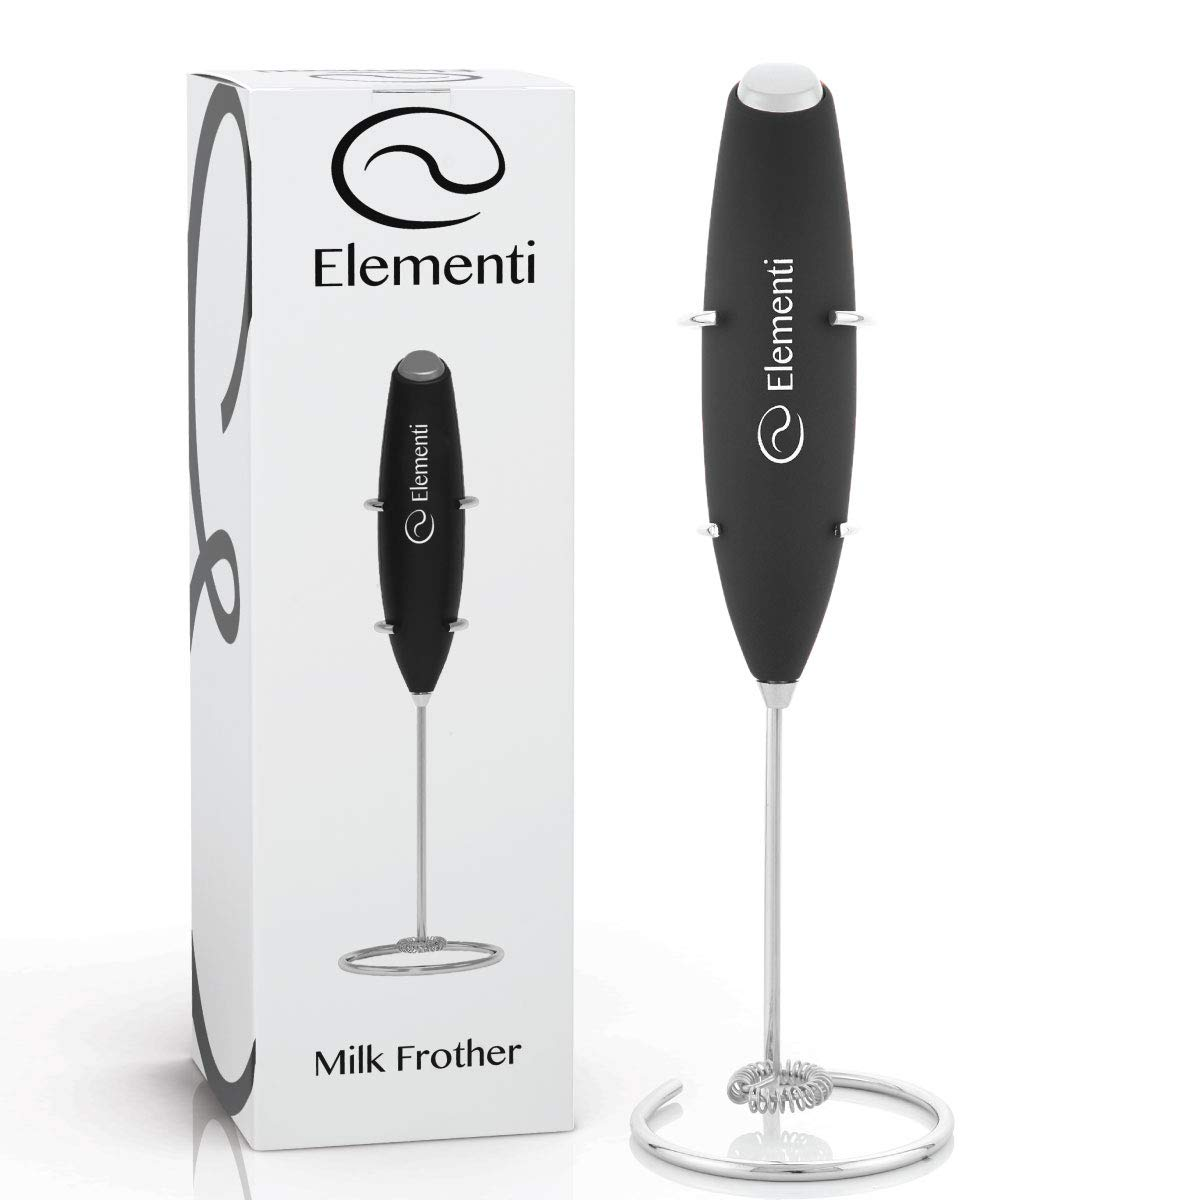 Milk Frother with Stand (Black) - Make Cappuccinos, Lattes and Bulletproof Coffee - Handheld with More Powerful High Torque Motor